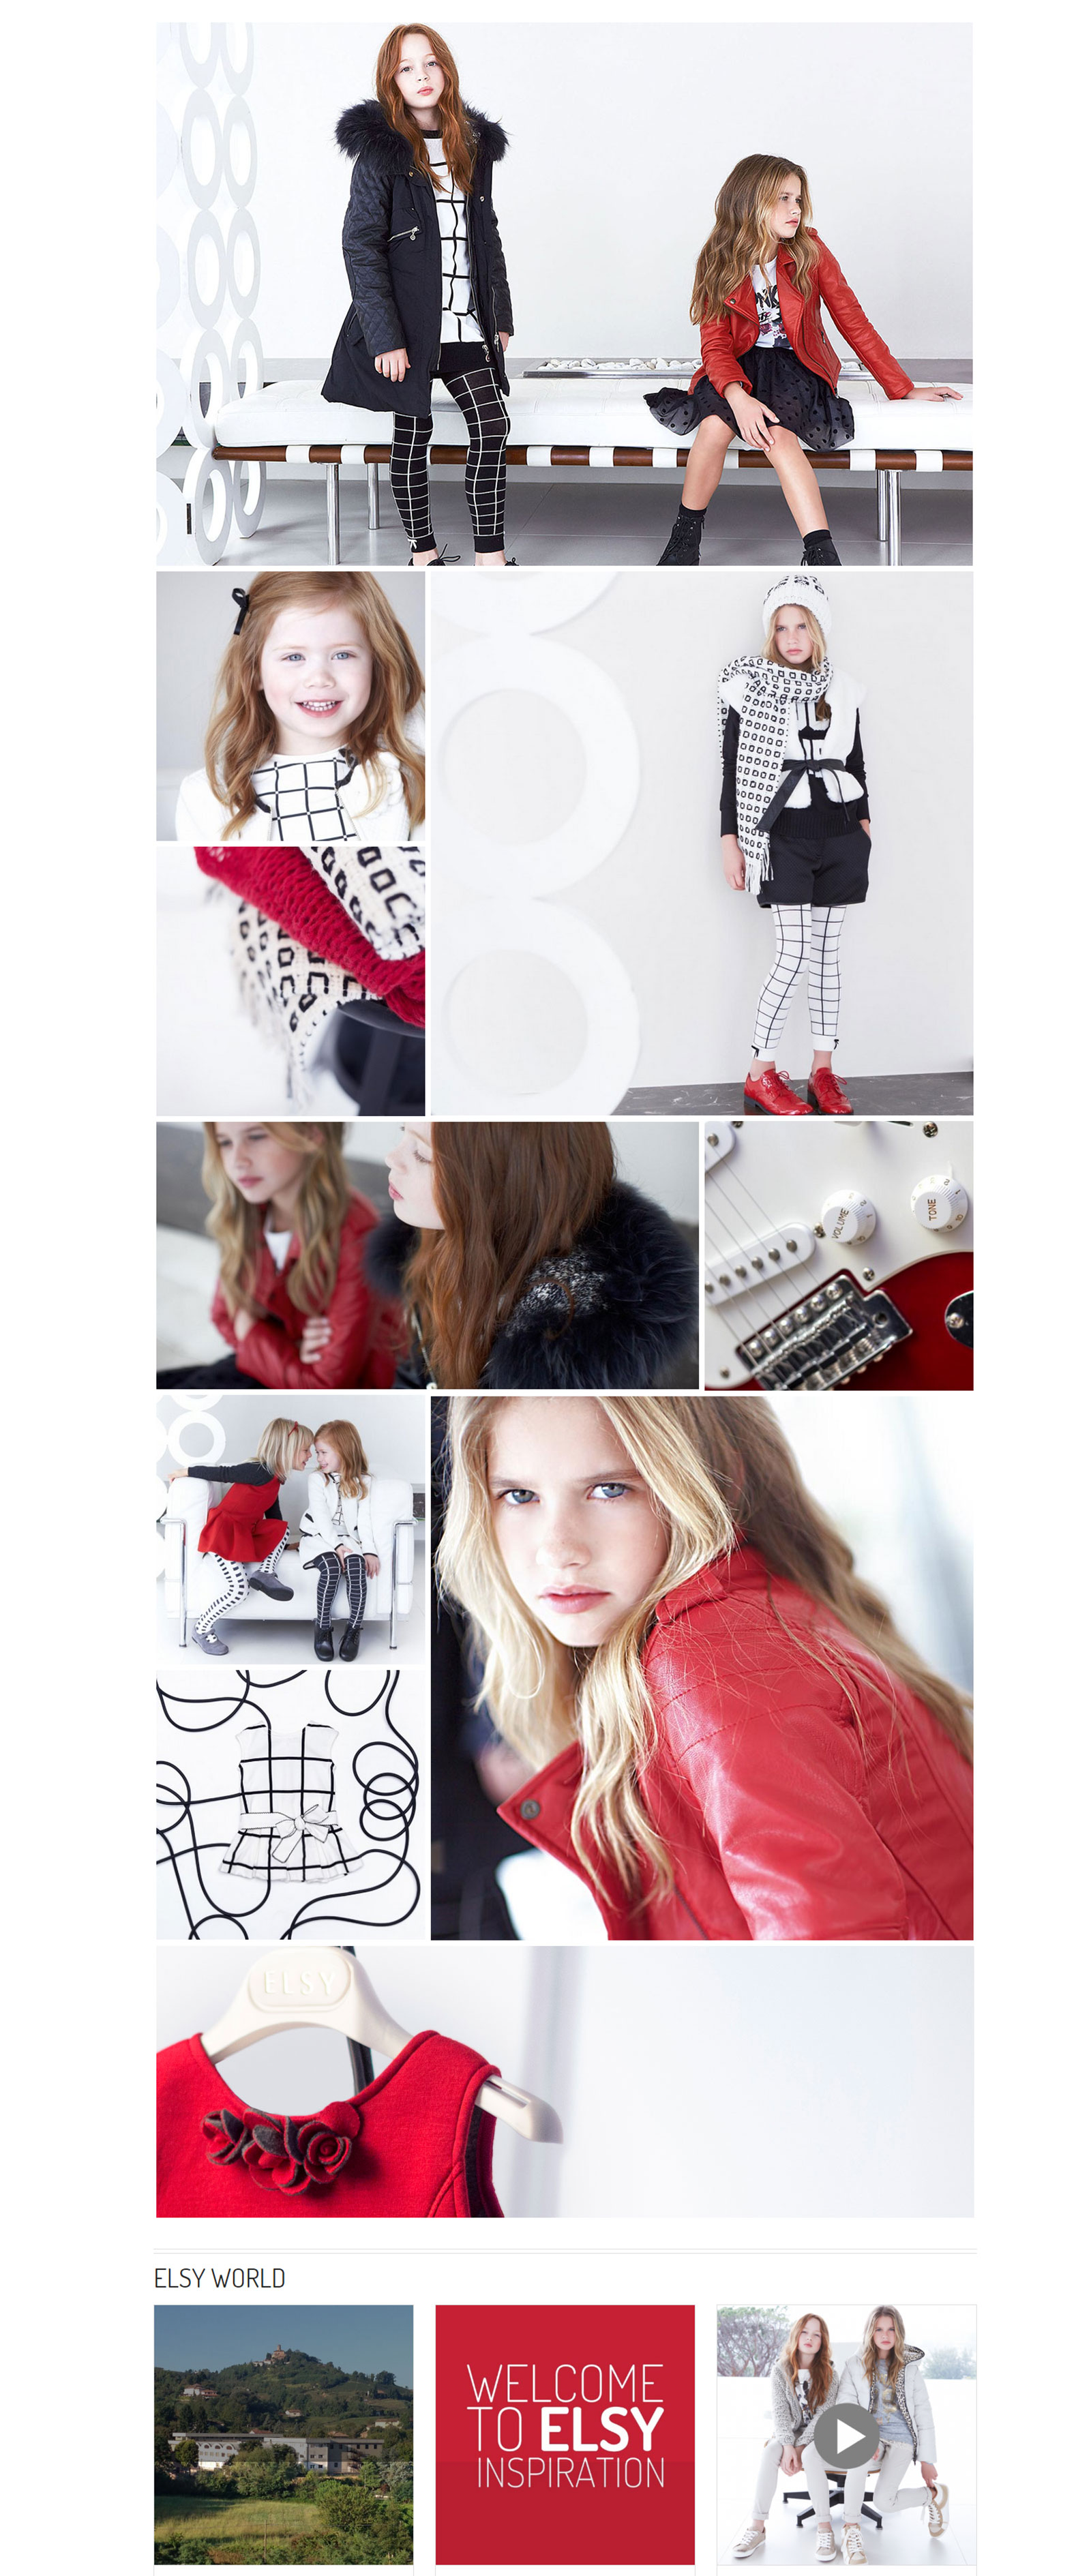 tema_colore_rosso_elsy